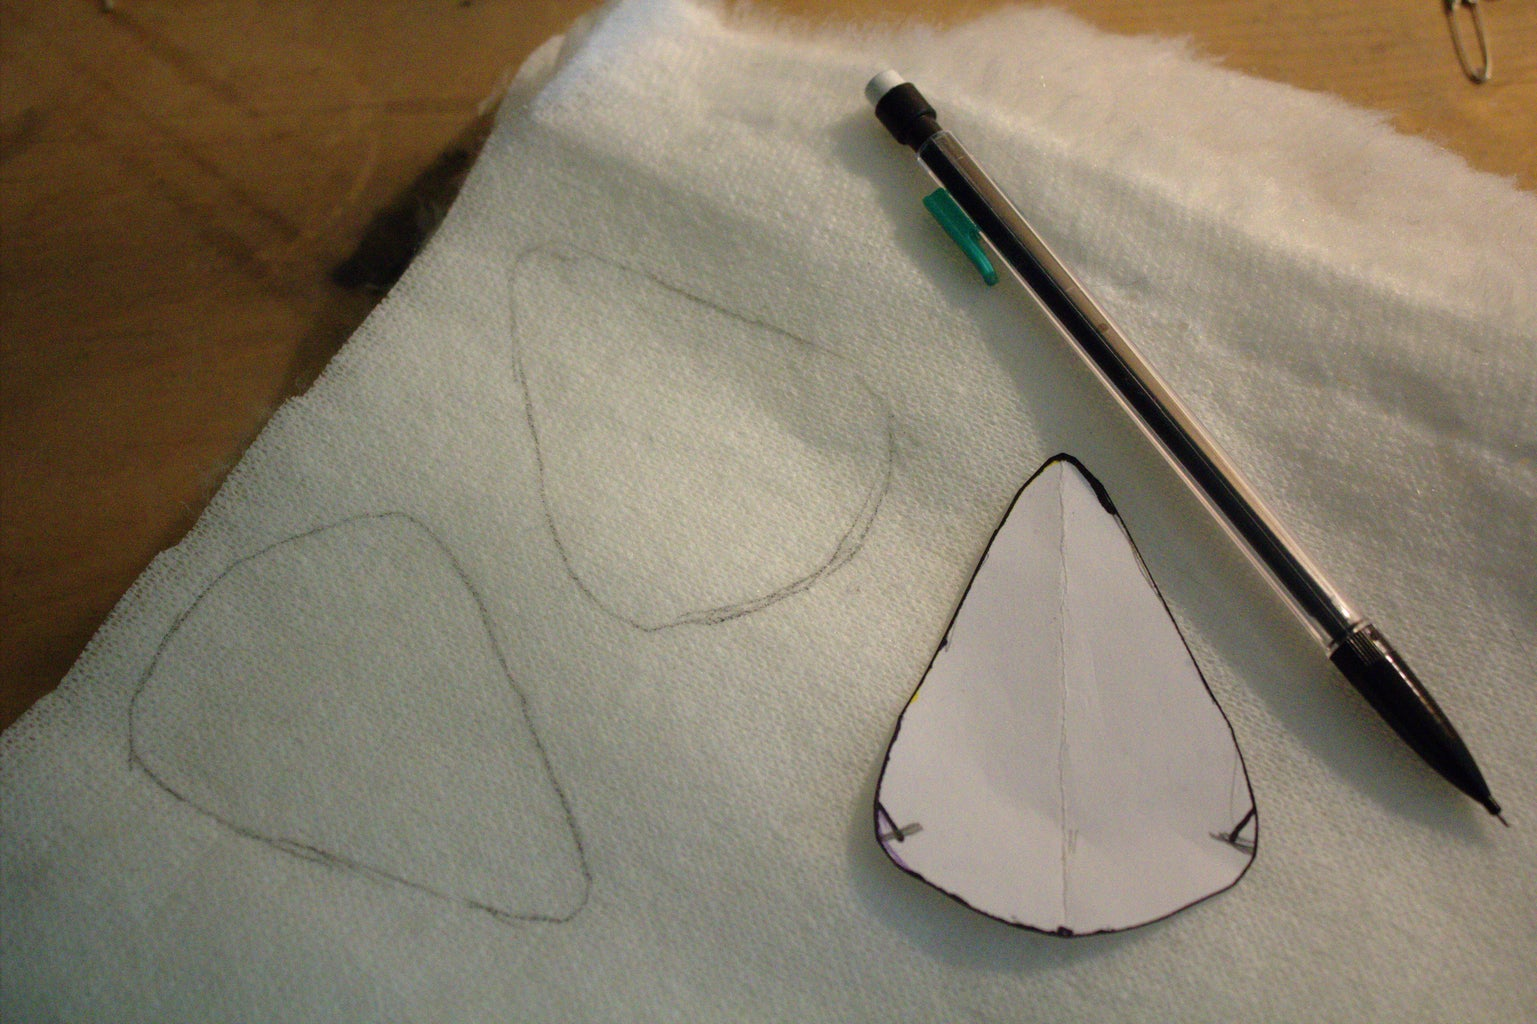 Sewing the Skin